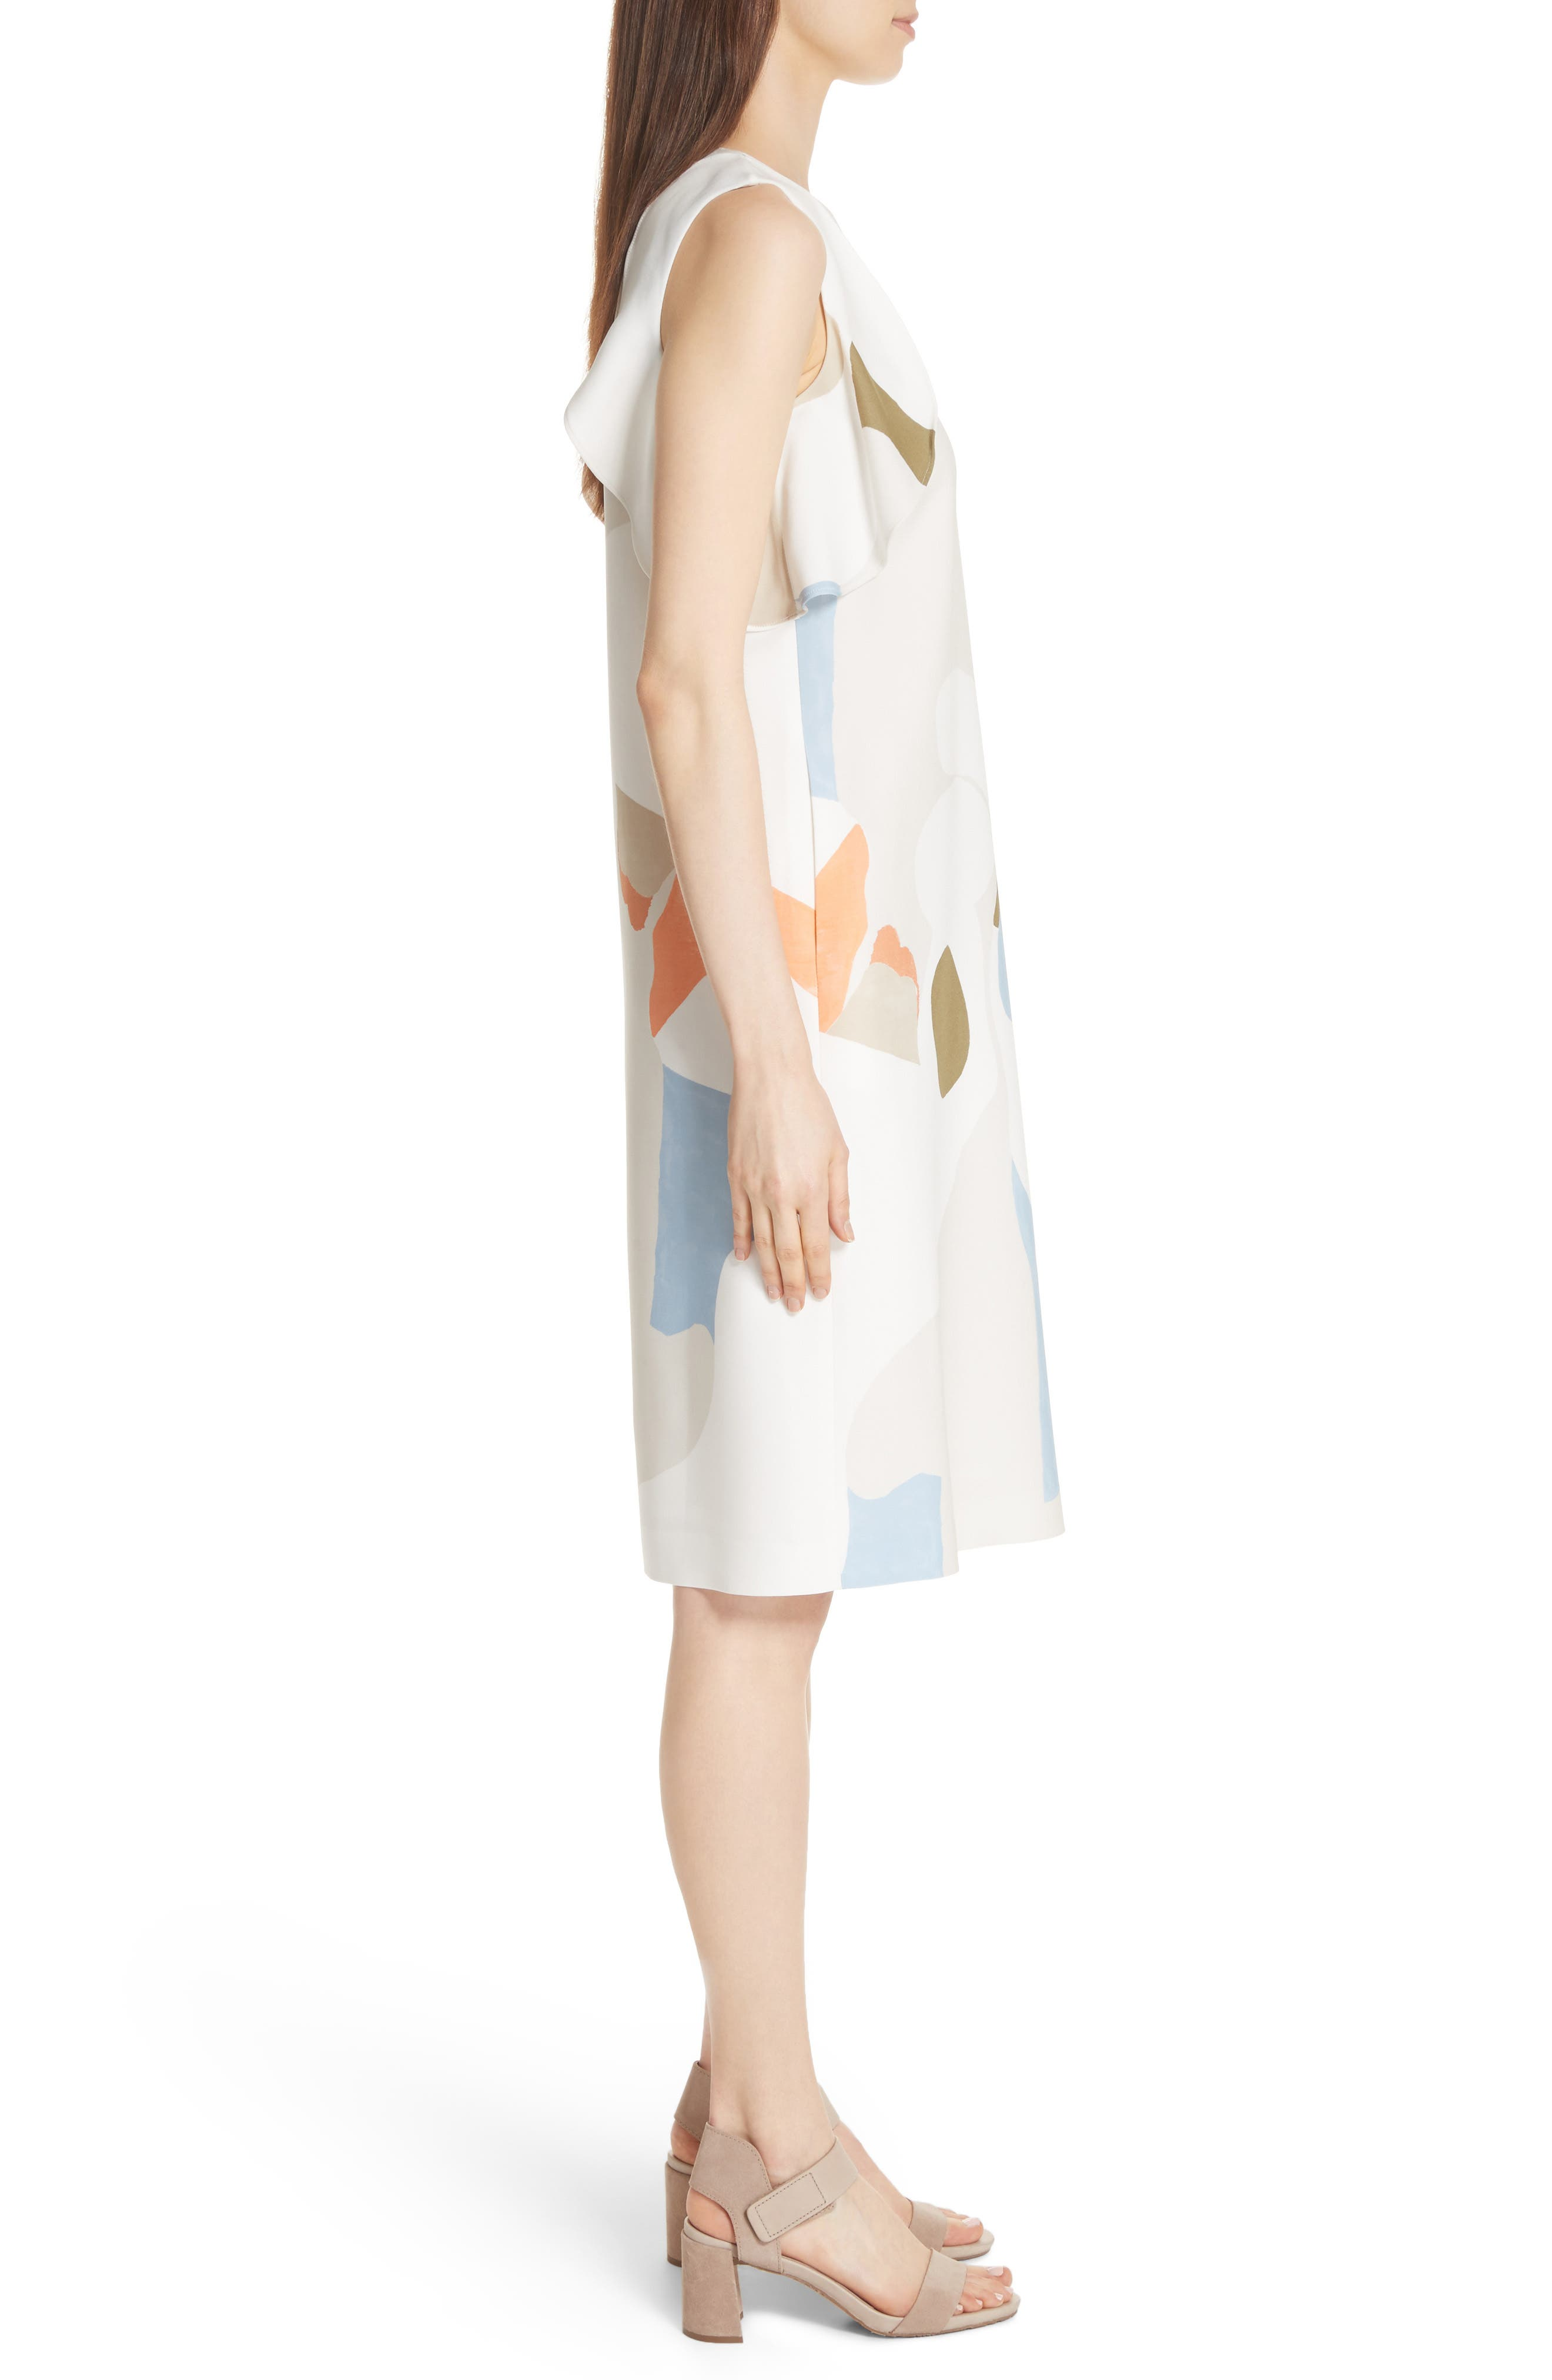 LAFAYETTE 148 NEW YORK,                             Landscape Expression Print Ruffle Dress,                             Alternate thumbnail 3, color,                             909